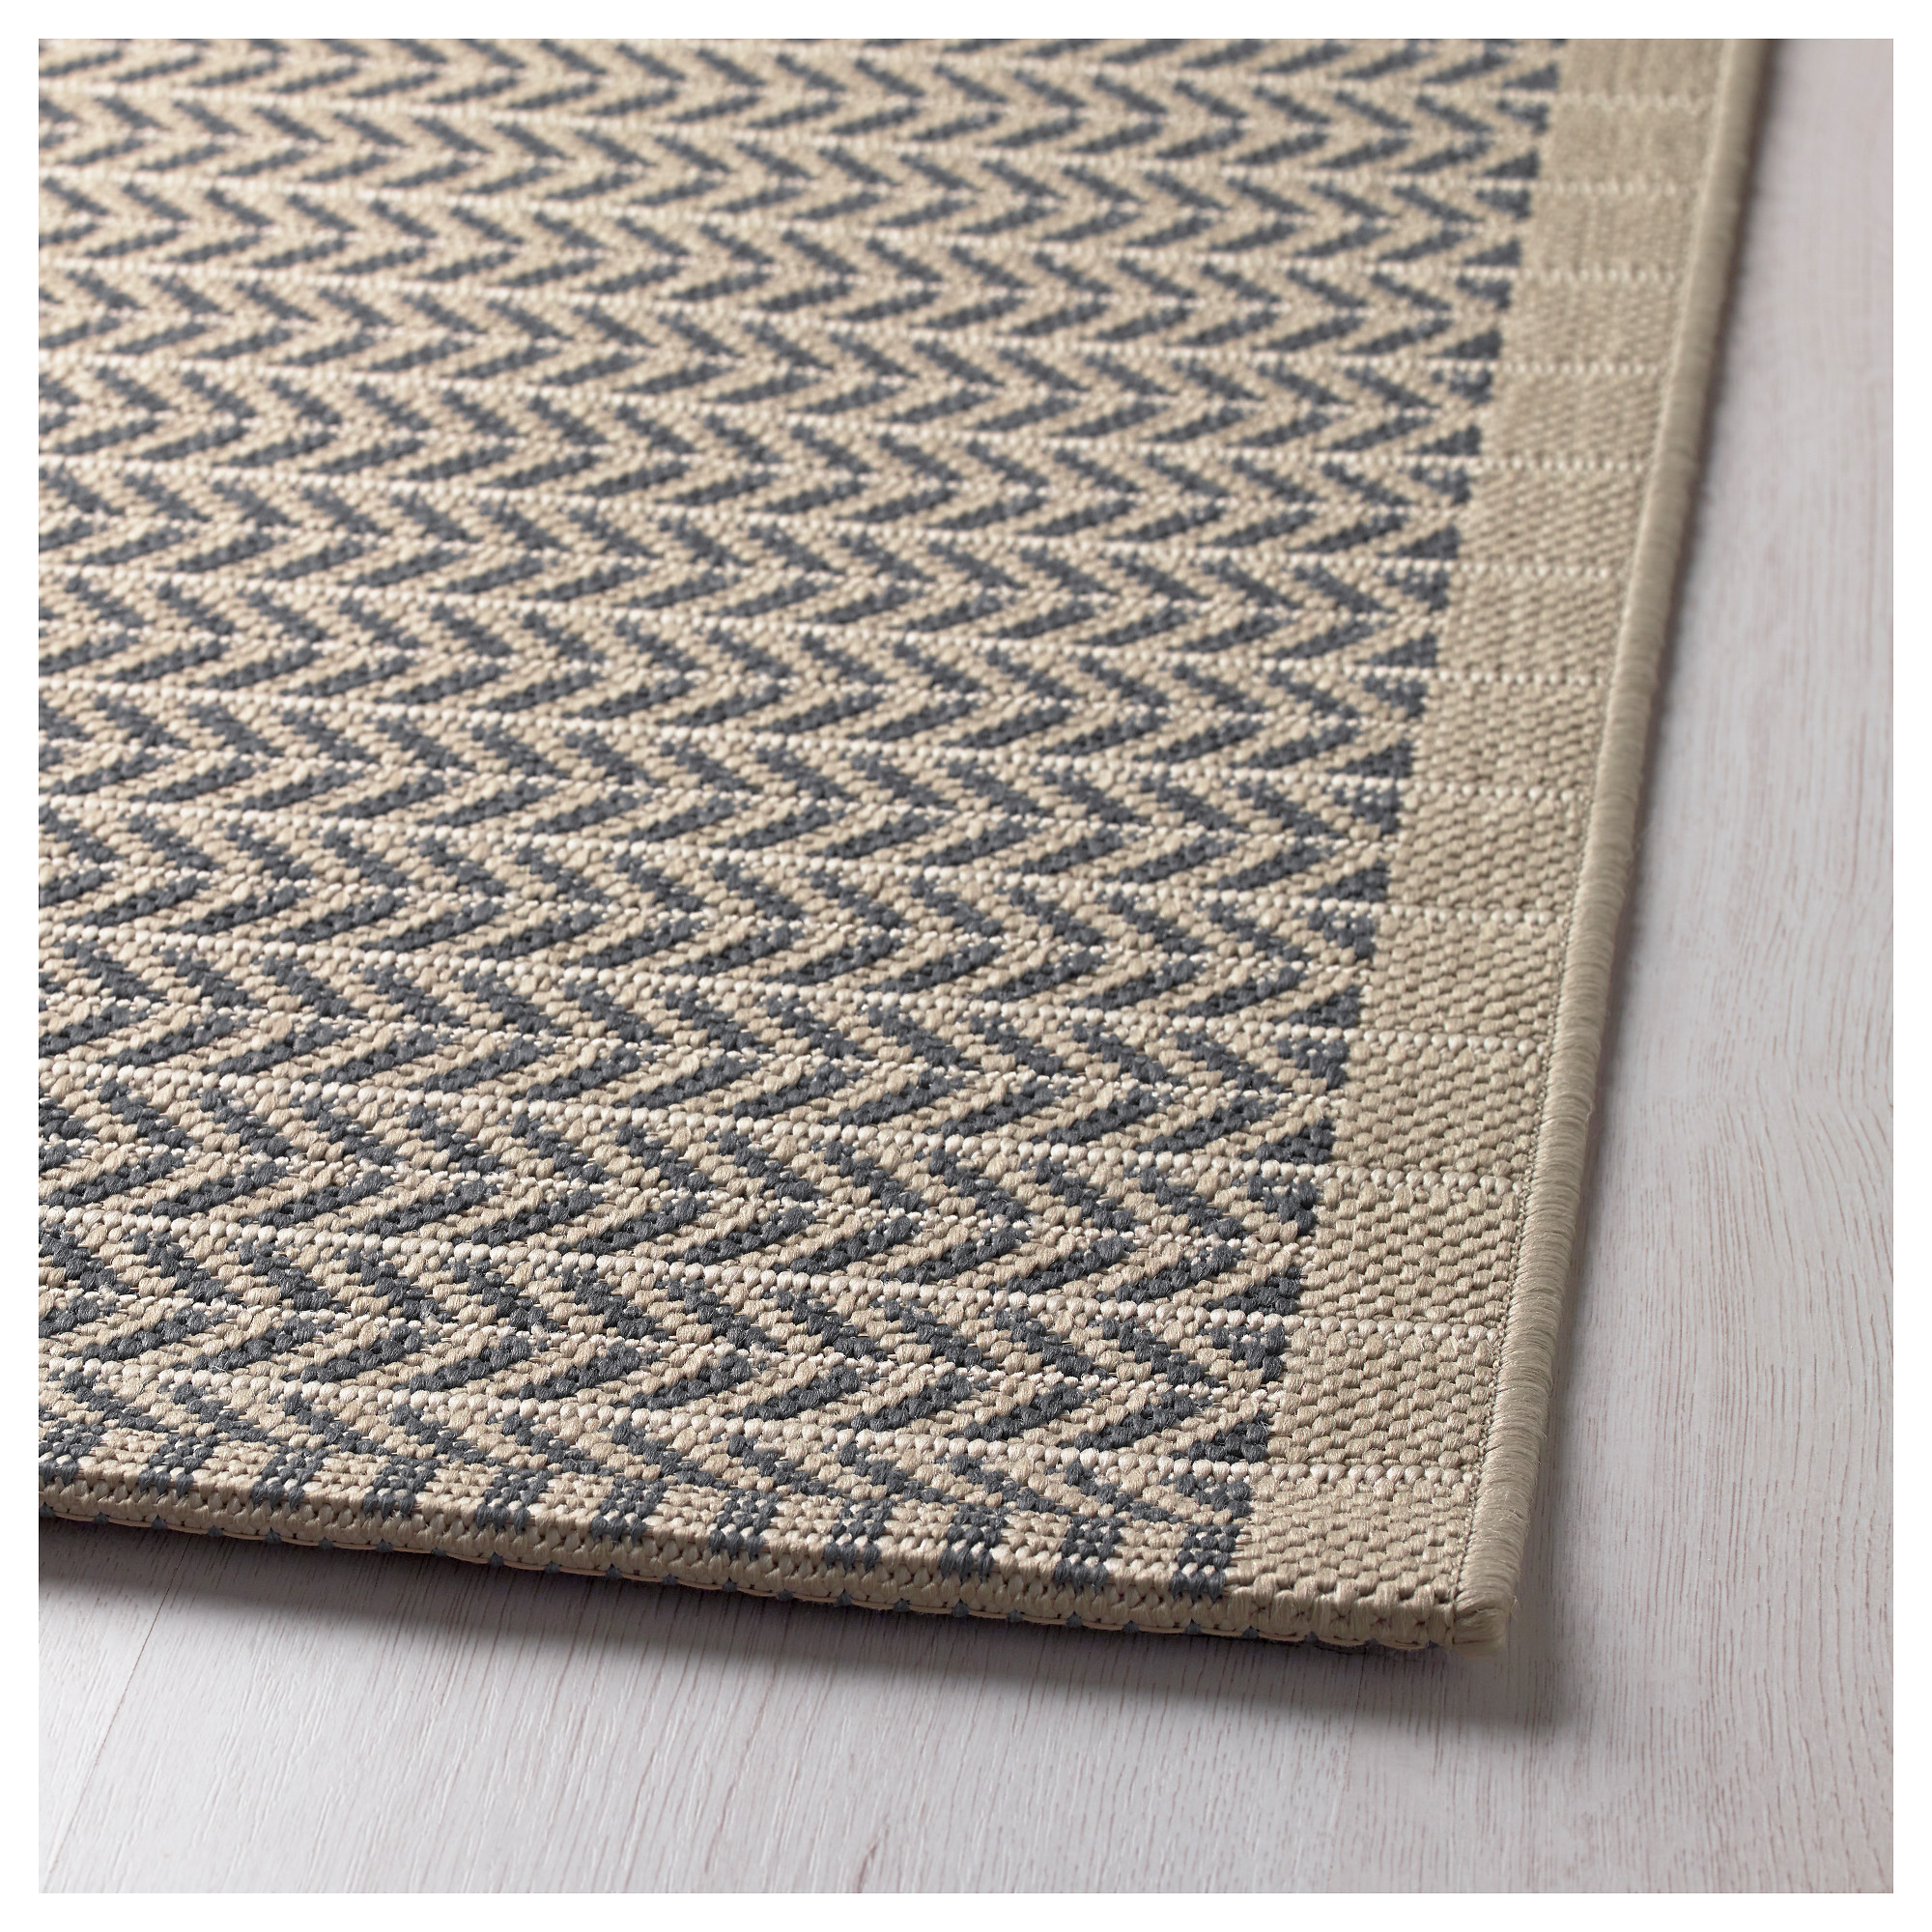 Lobbak Rug Flatwoven In Outdoor Beige Indoor Outdoor 6 7 X8